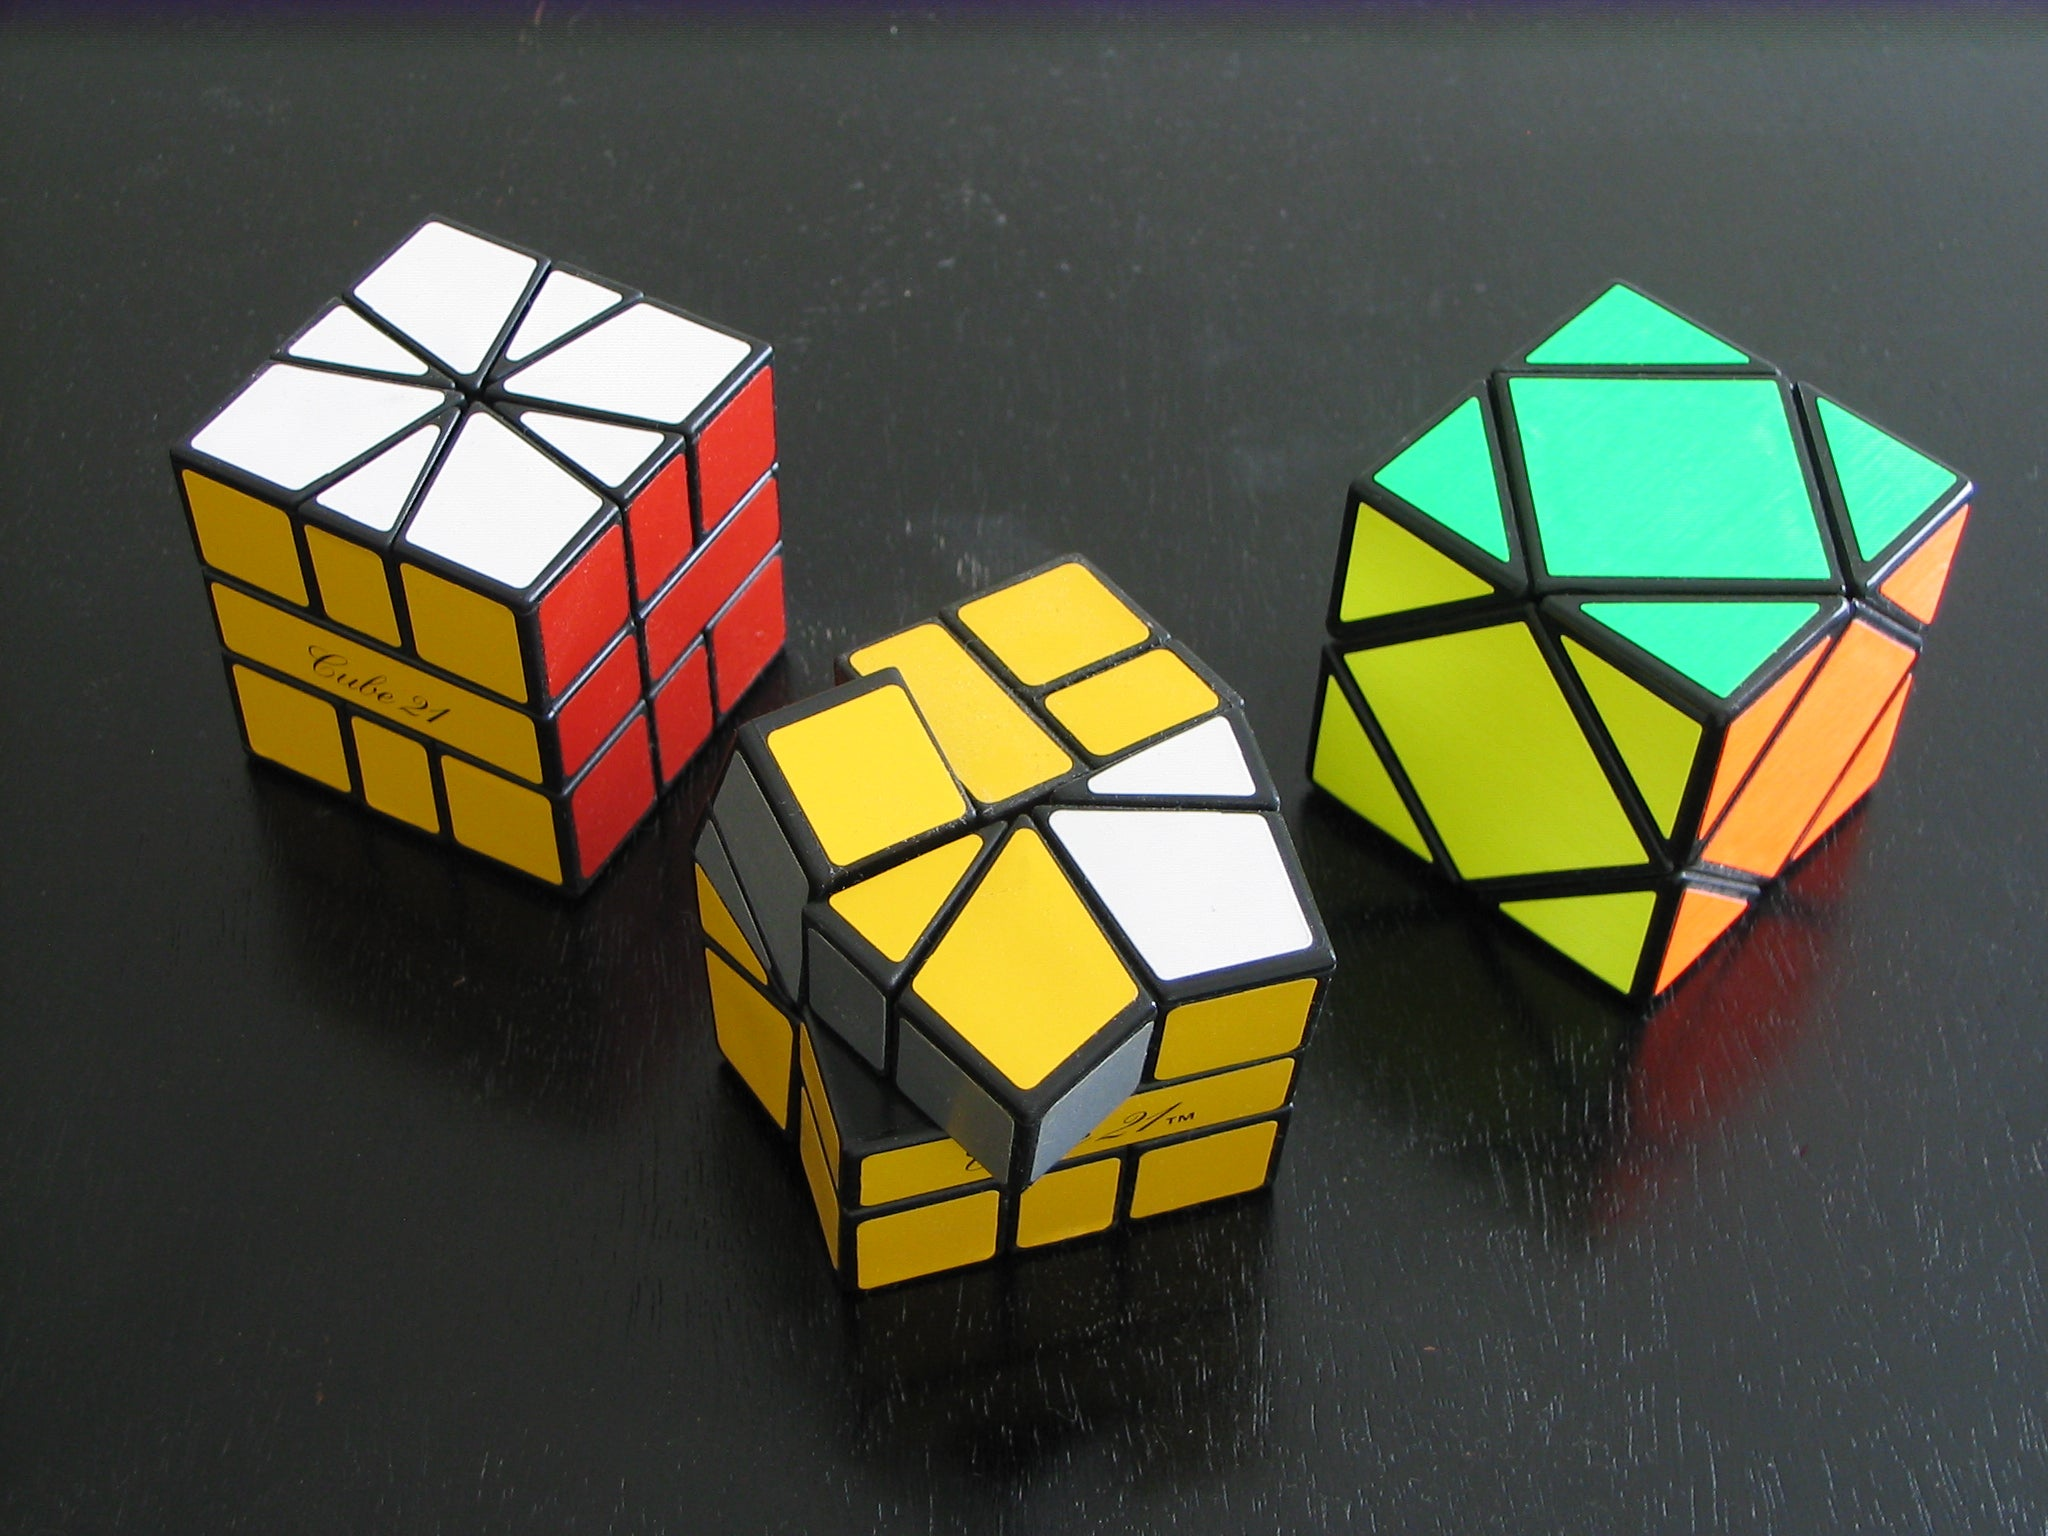 types of twisty cube puzzles